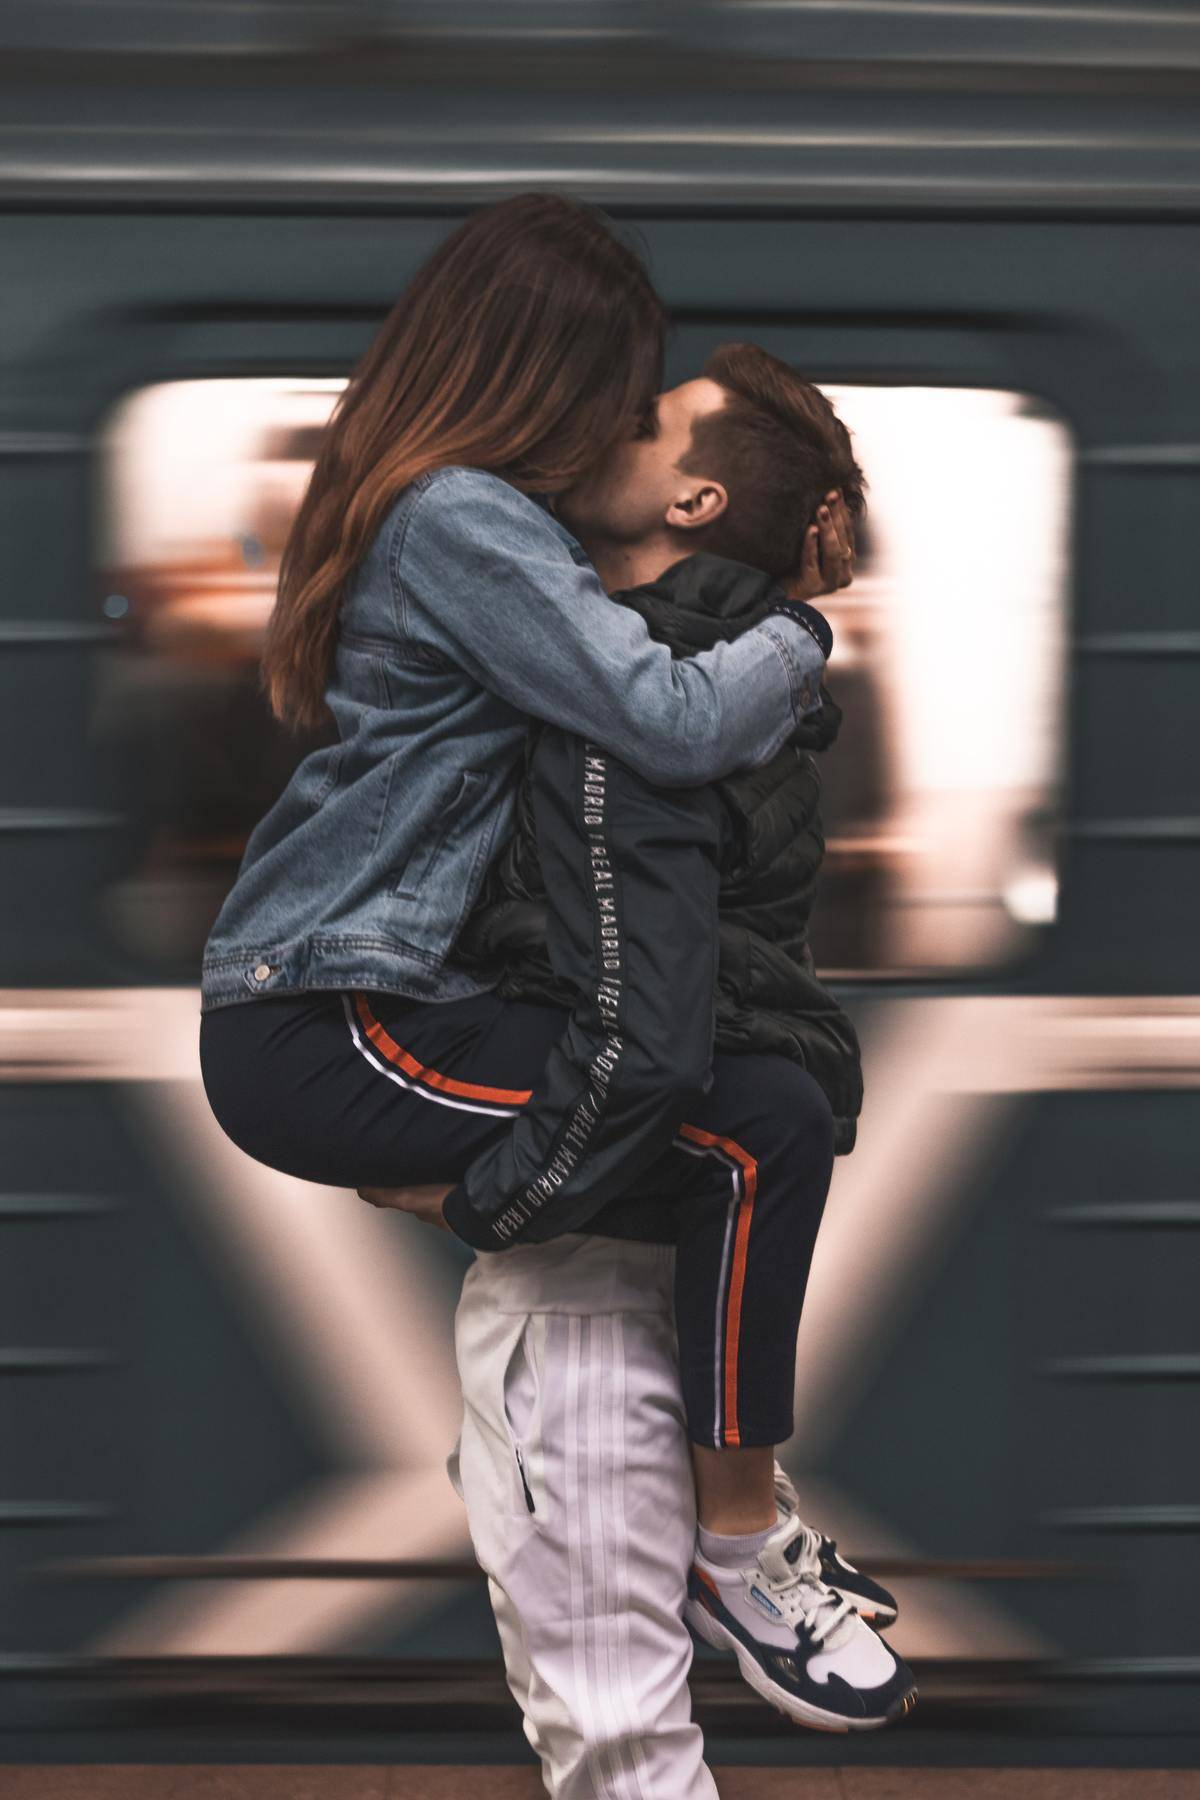 couple kissing in front of a moving train